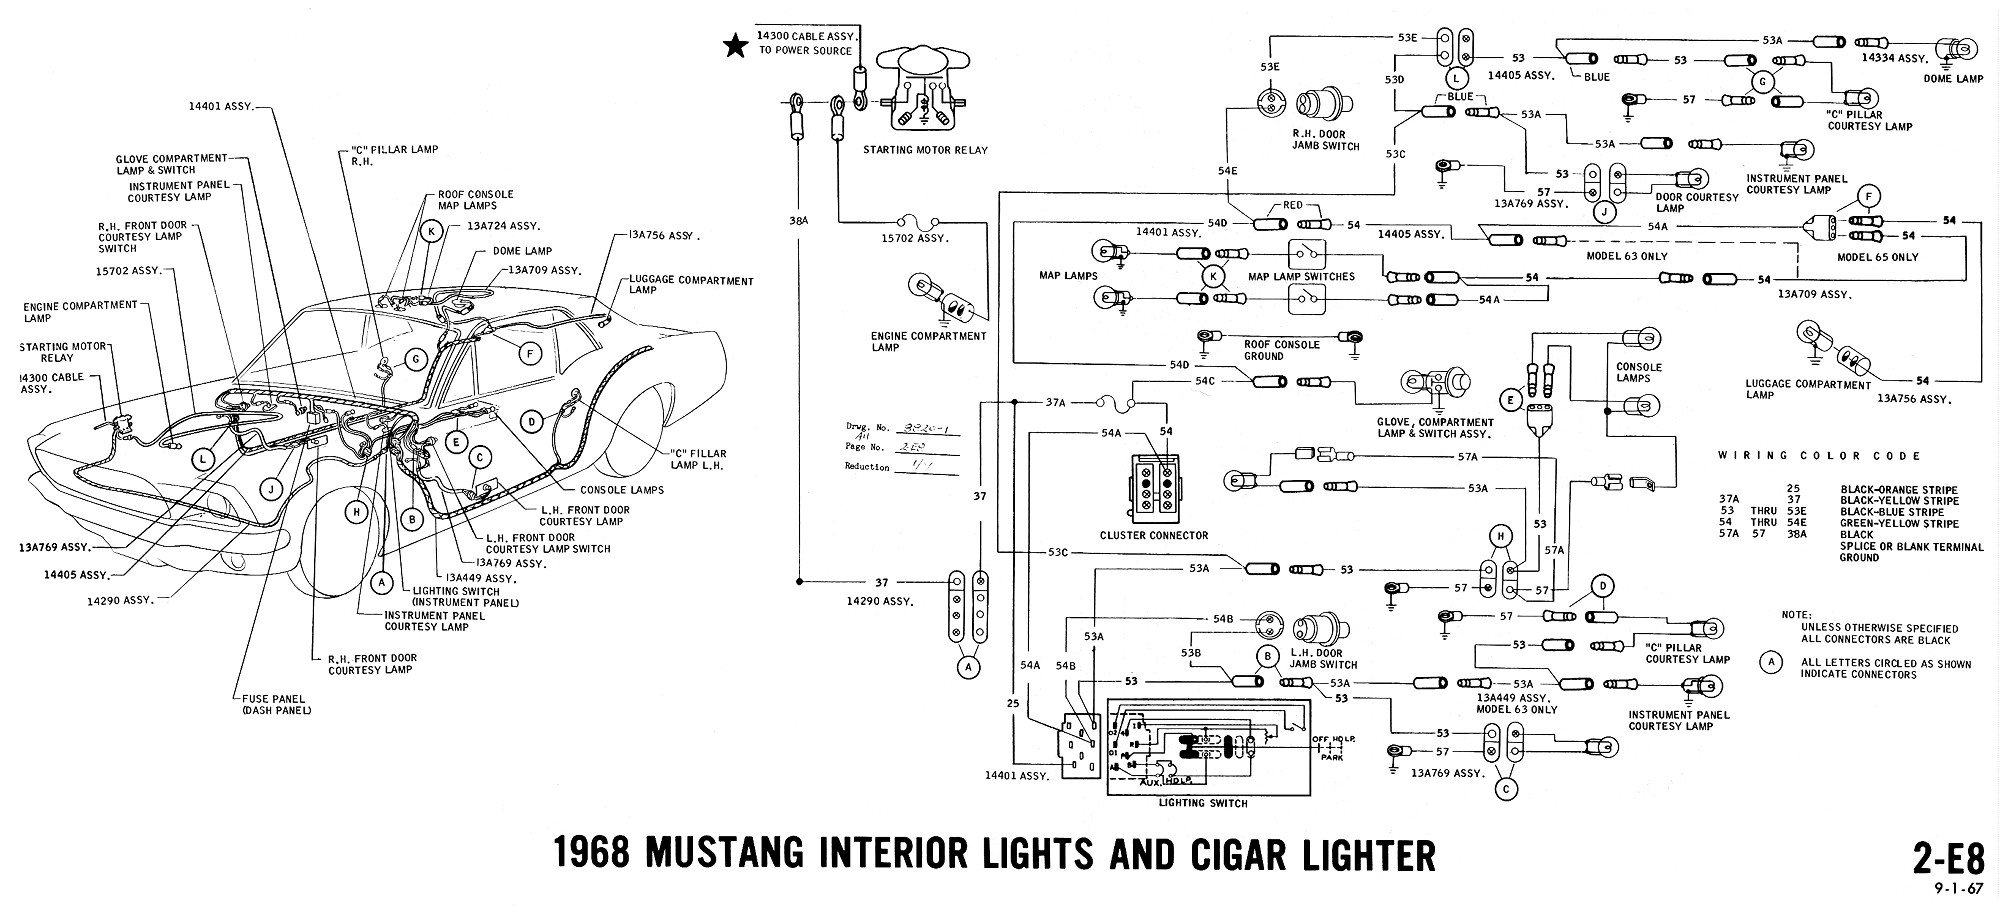 hight resolution of 1968 mustang wiring diagram interior lights cigar lighter